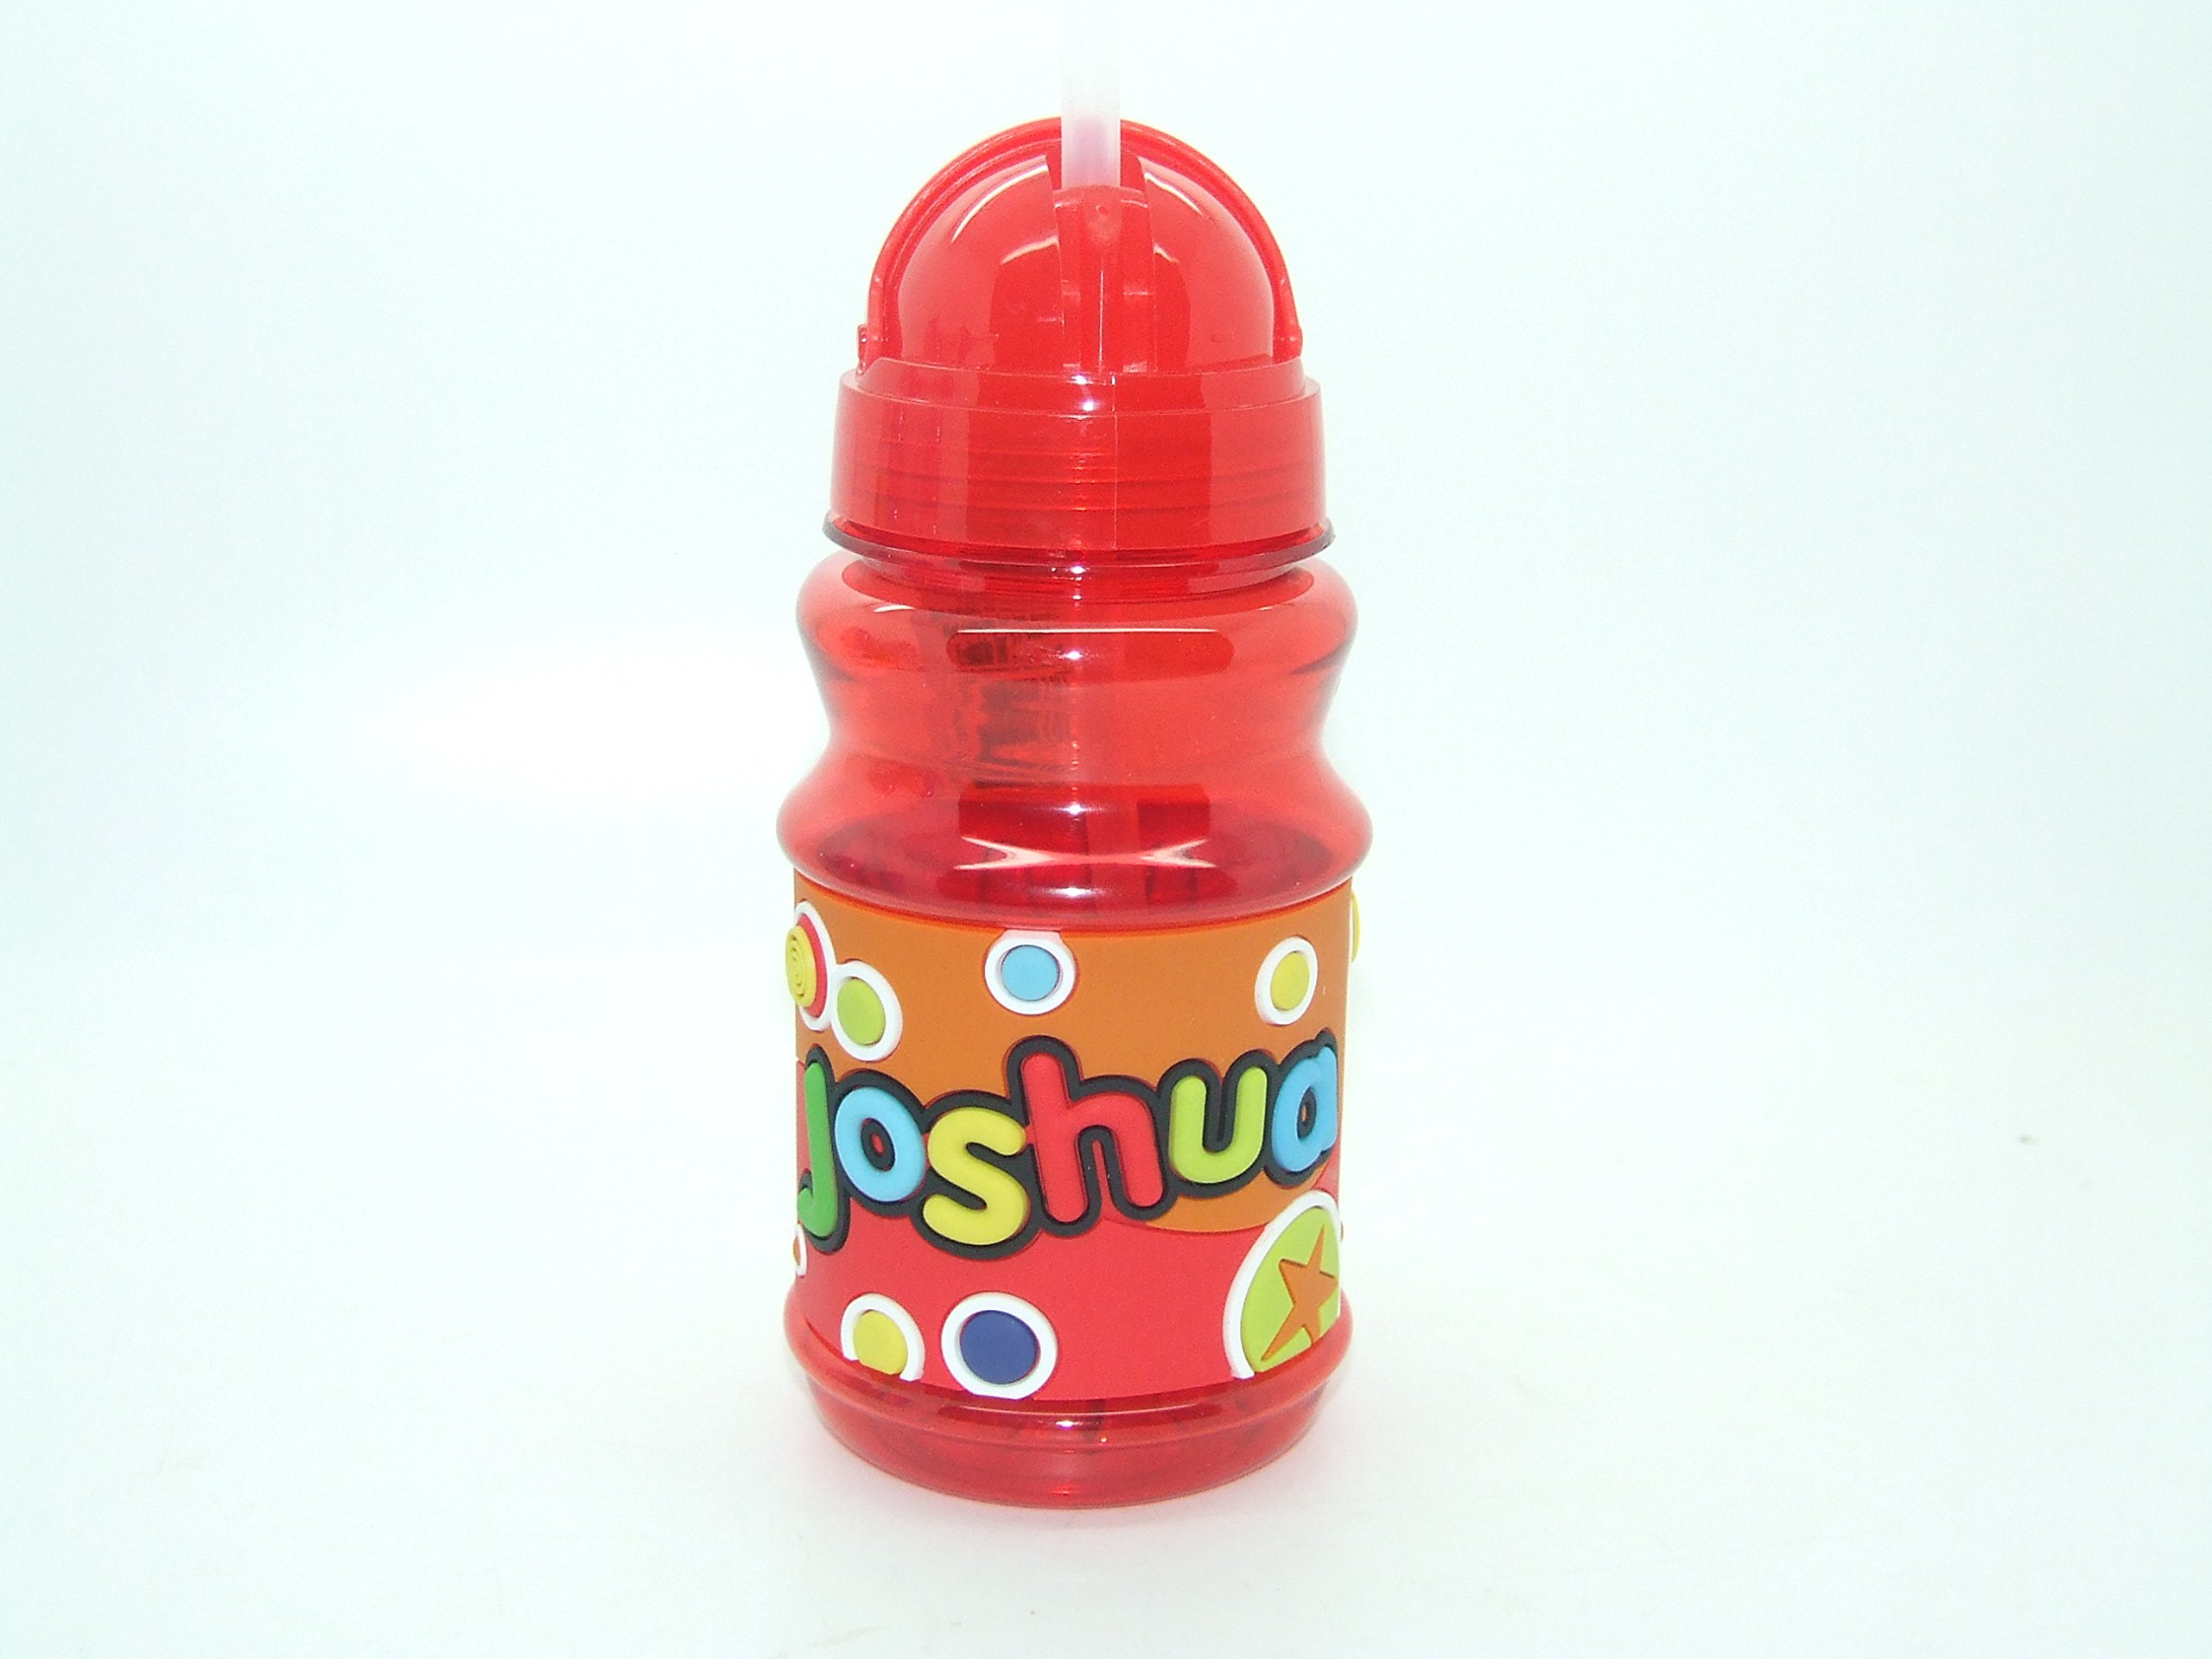 JOSHUA PERSONALISED HANDY FLIP TOP BOTTLE BPA FREE LID SEALS THE STRAW SO PERFECT FOR LUNCH BAGS 16CM HEIGHT - PLEASE NOTE BOTTLE NAMES CAN NOT BE CHANGED THE NAME YOU WILL RECEIVE IS IN THE TITLE